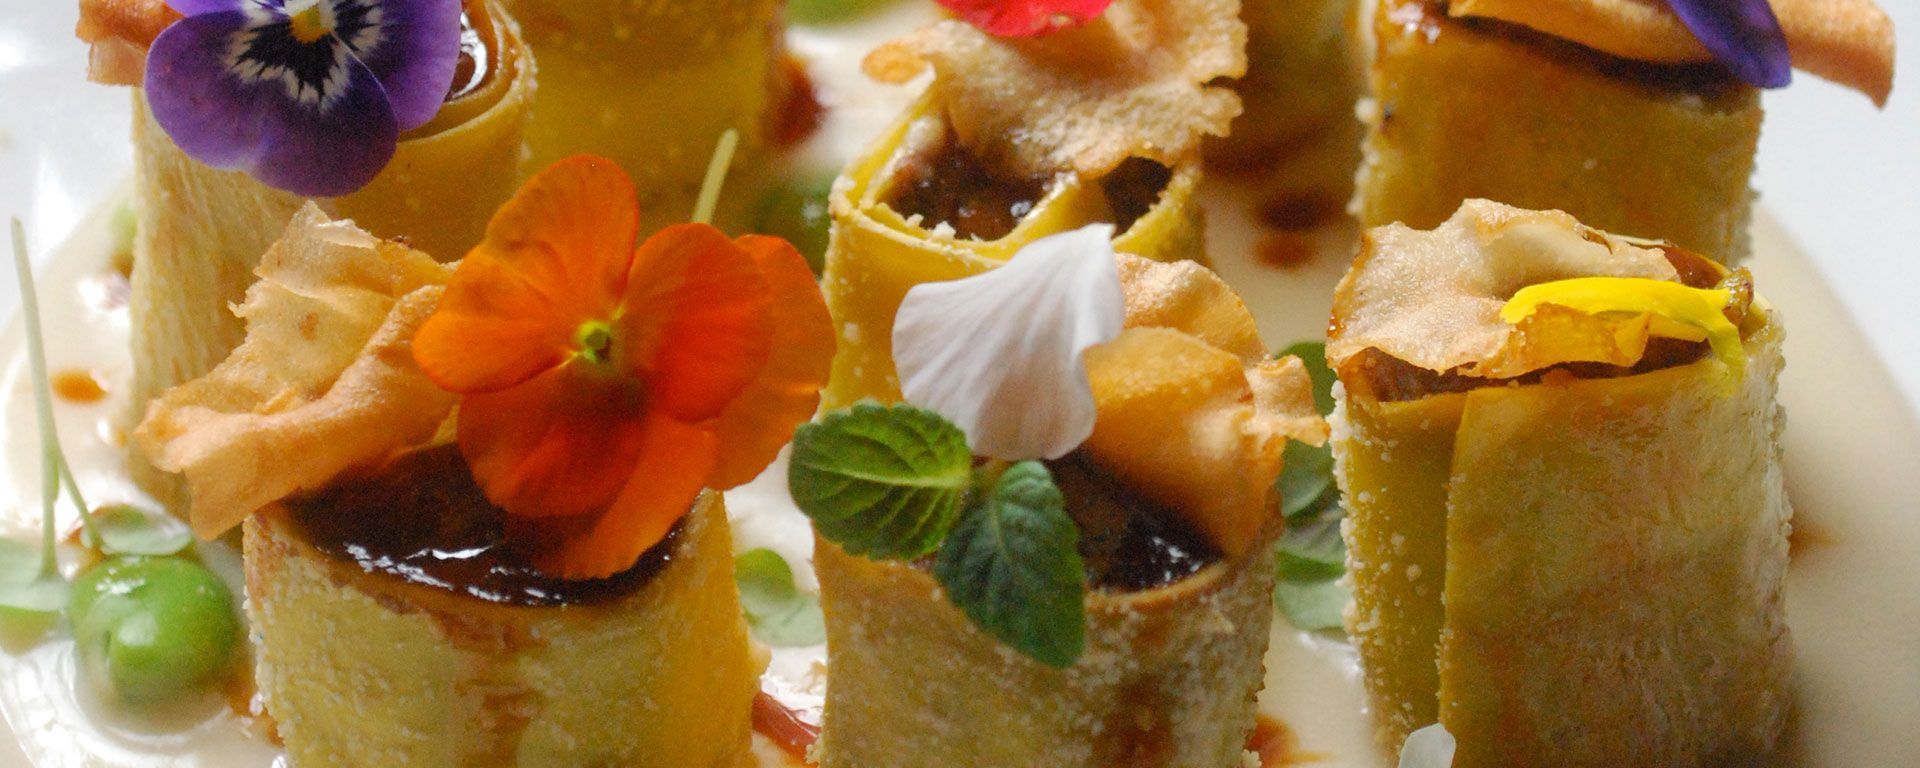 gallery-home4_0003_10-cannelloni